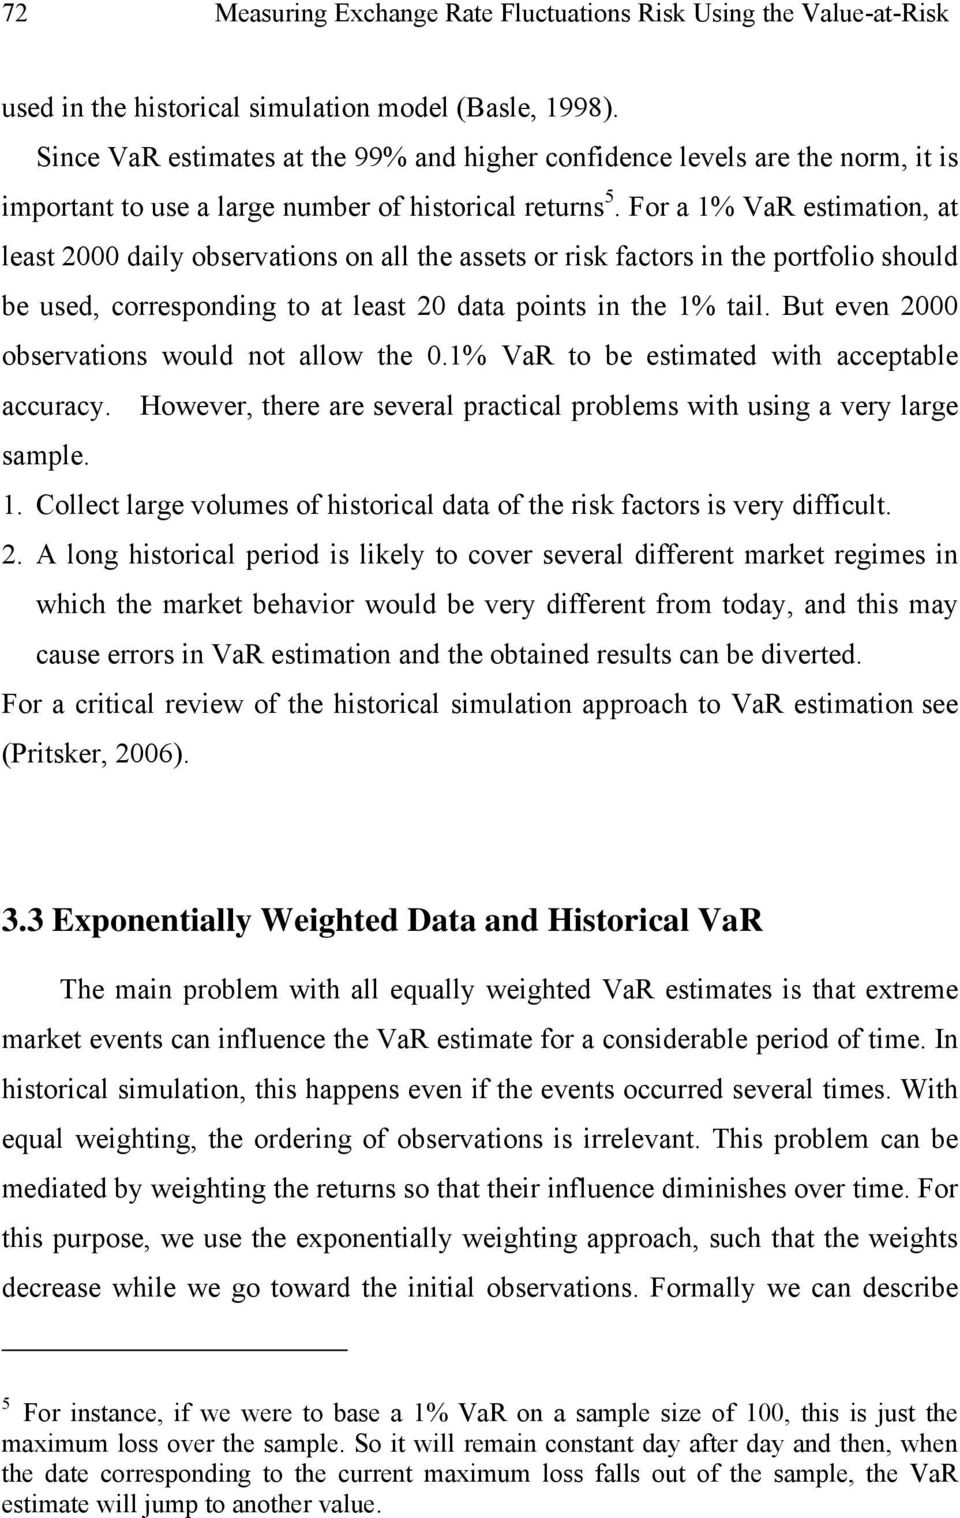 For a 1% VaR estimation, at least 2000 daily observations on all the assets or risk factors in the portfolio should be used, corresponding to at least 20 data points in the 1% tail.